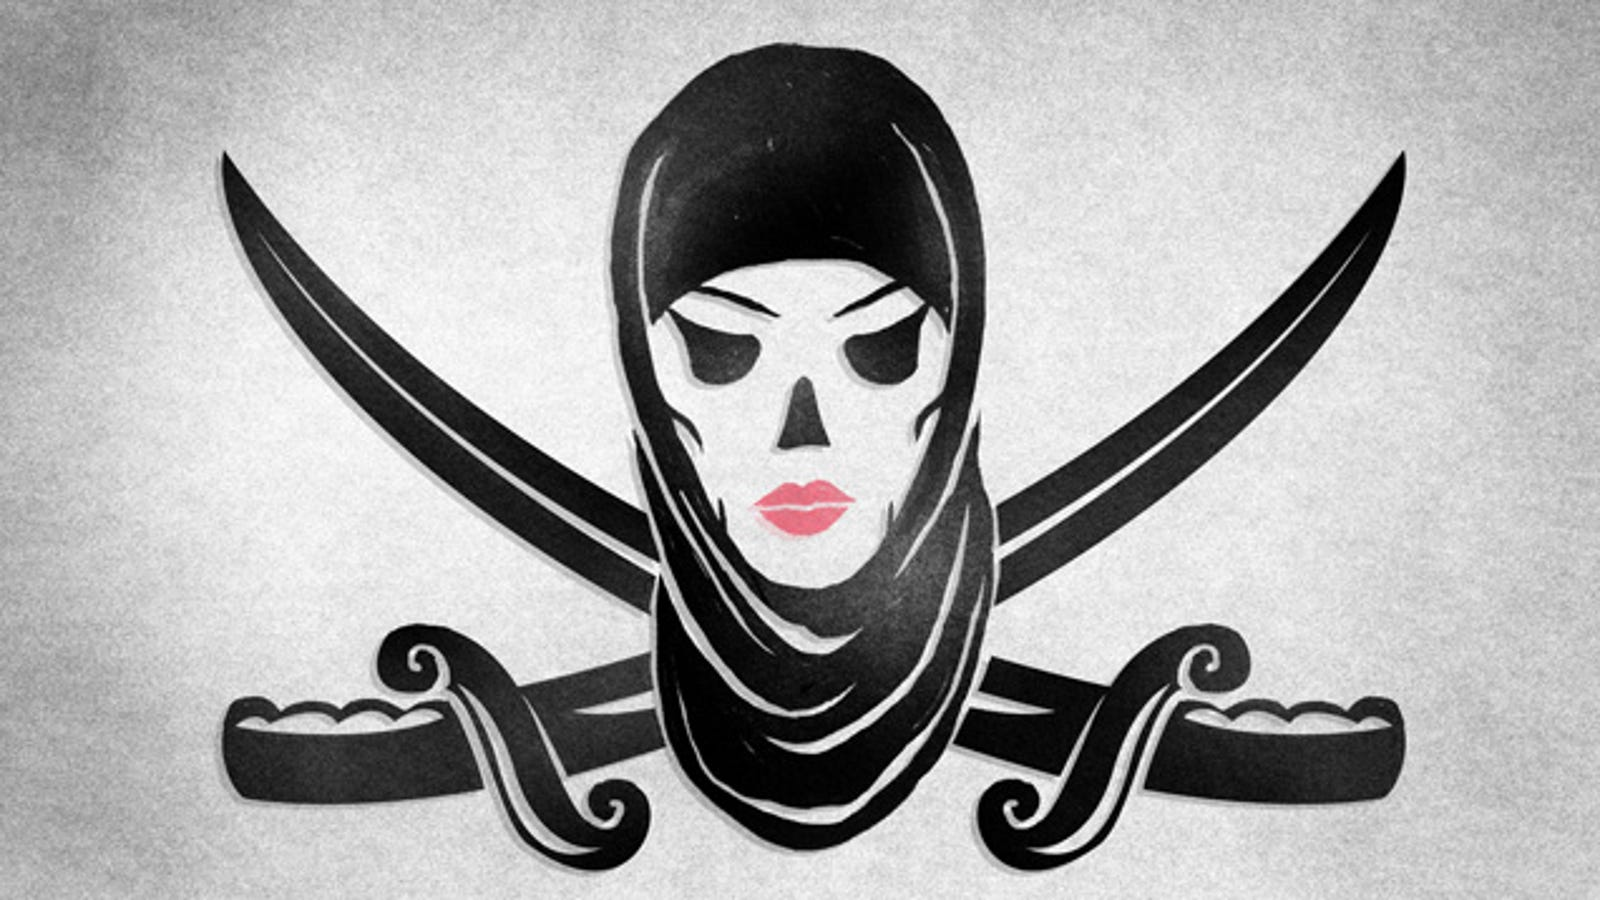 Sayyida al-Hurra, the Beloved, Avenging Islamic Pirate Queen